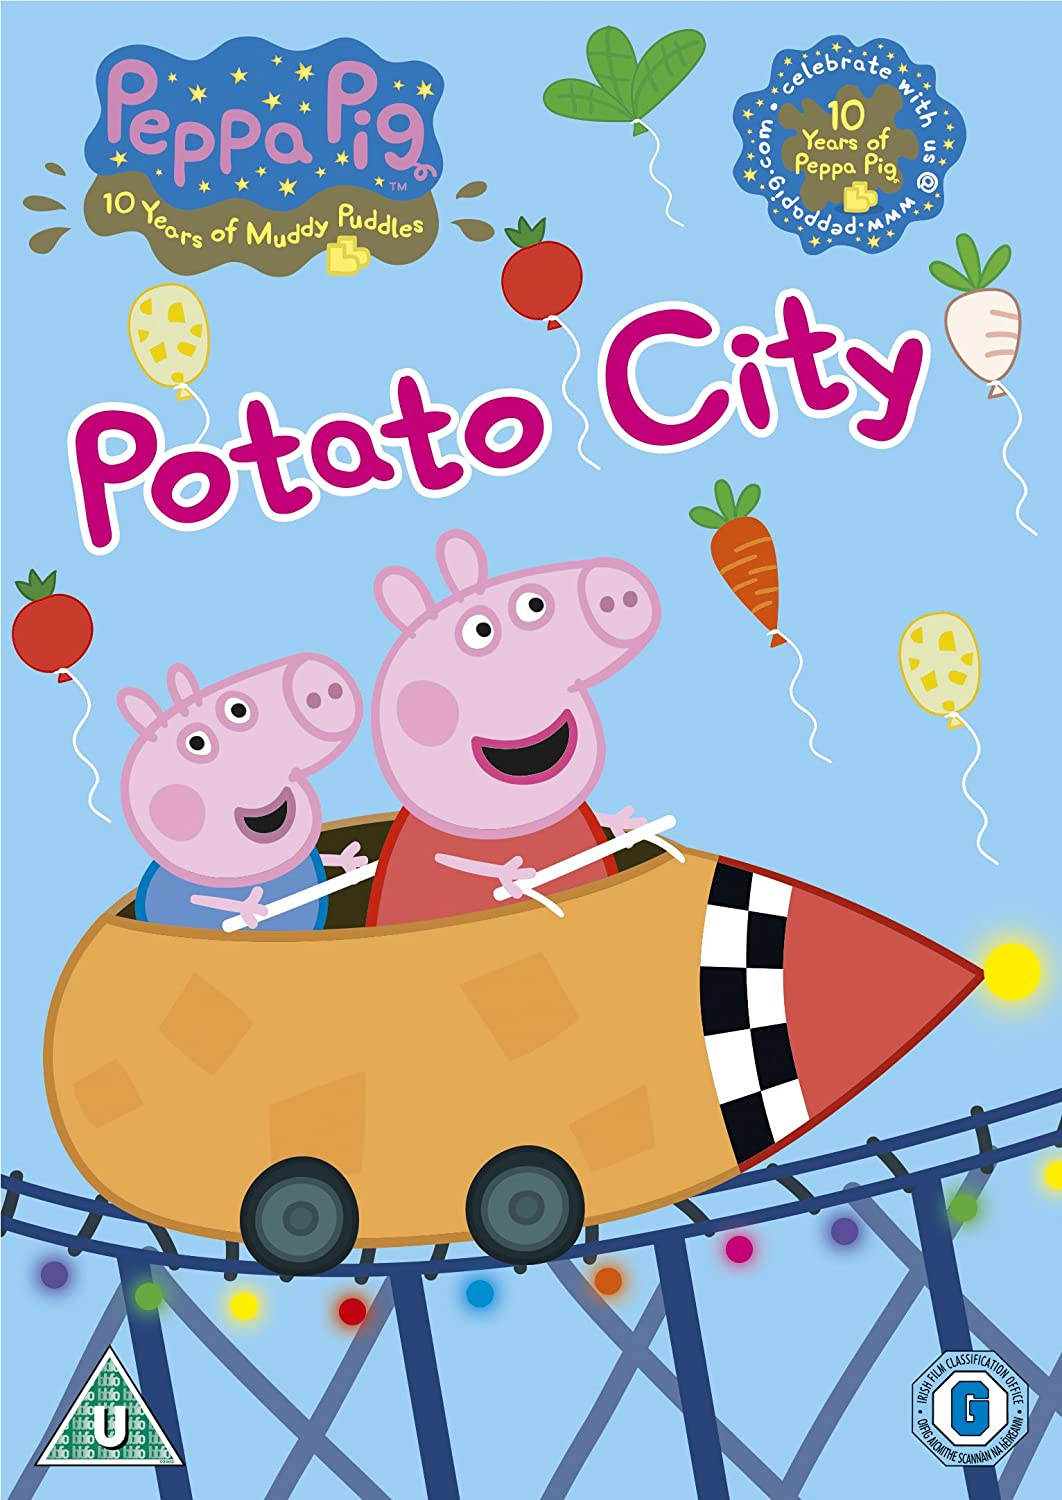 Peppa Pig Washing Peppa Pig Potato City Volume